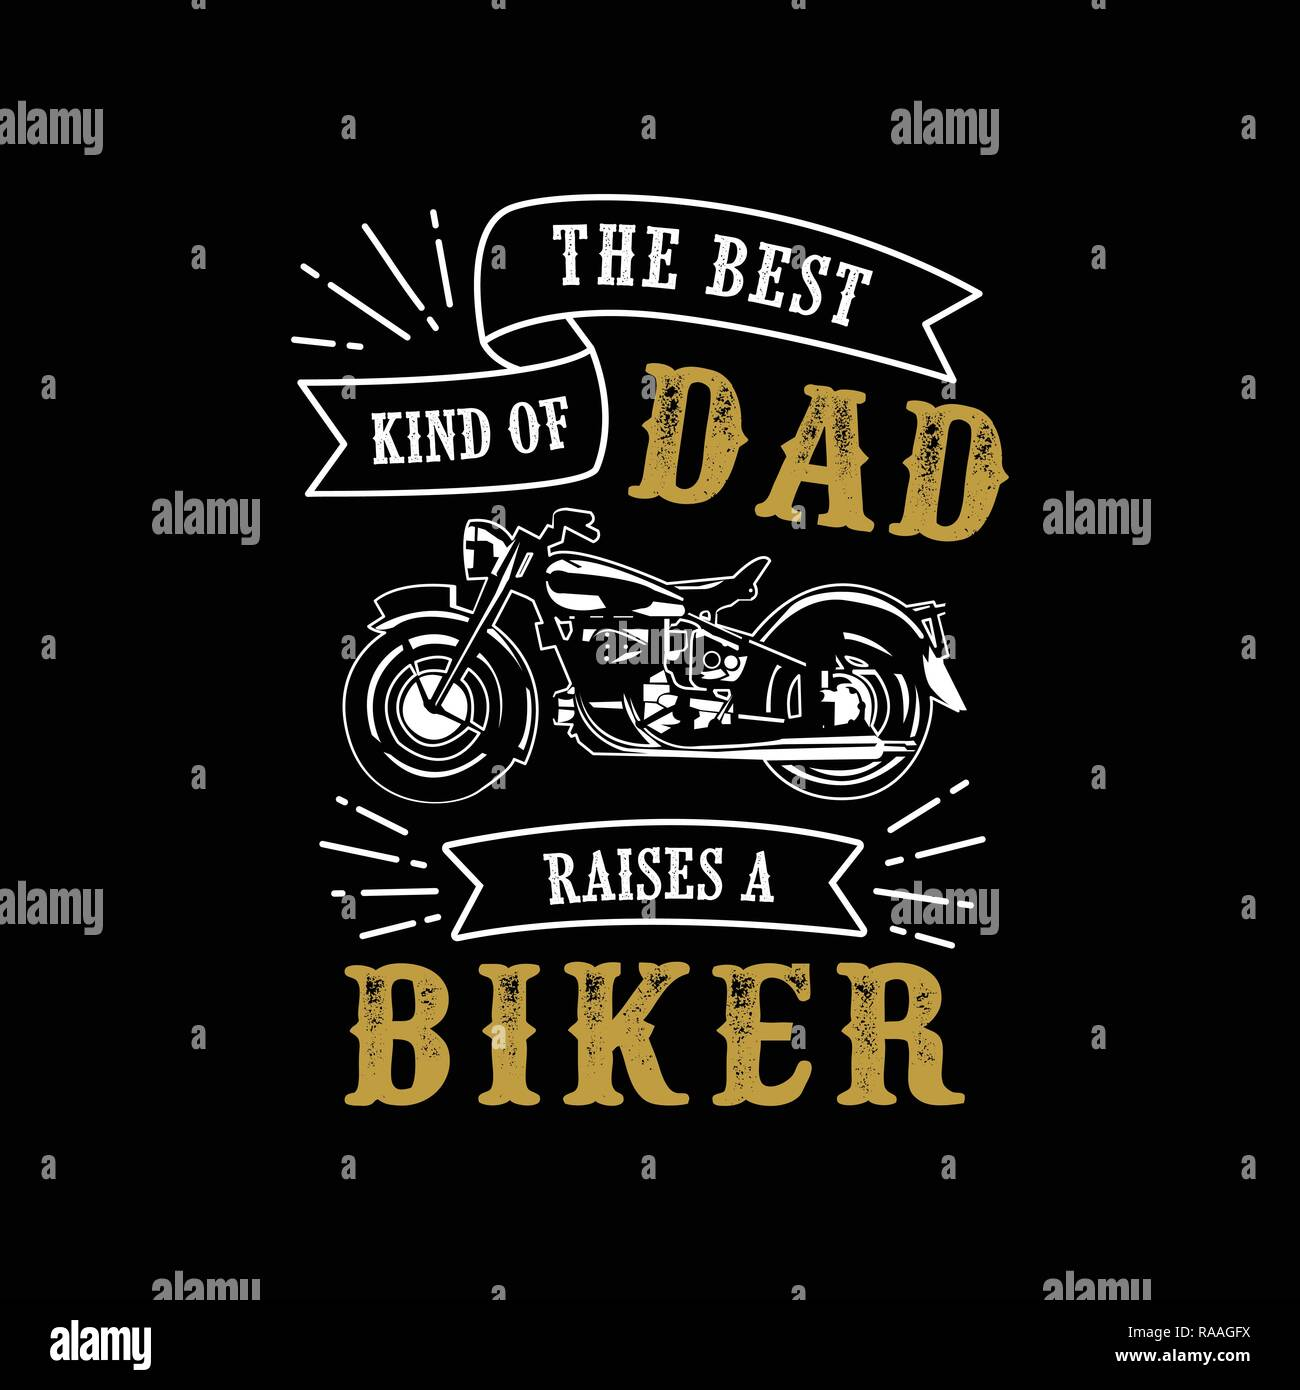 Father S Day Saying And Quotes The Best Kind Of Dad Biker Stock Vector Image Art Alamy